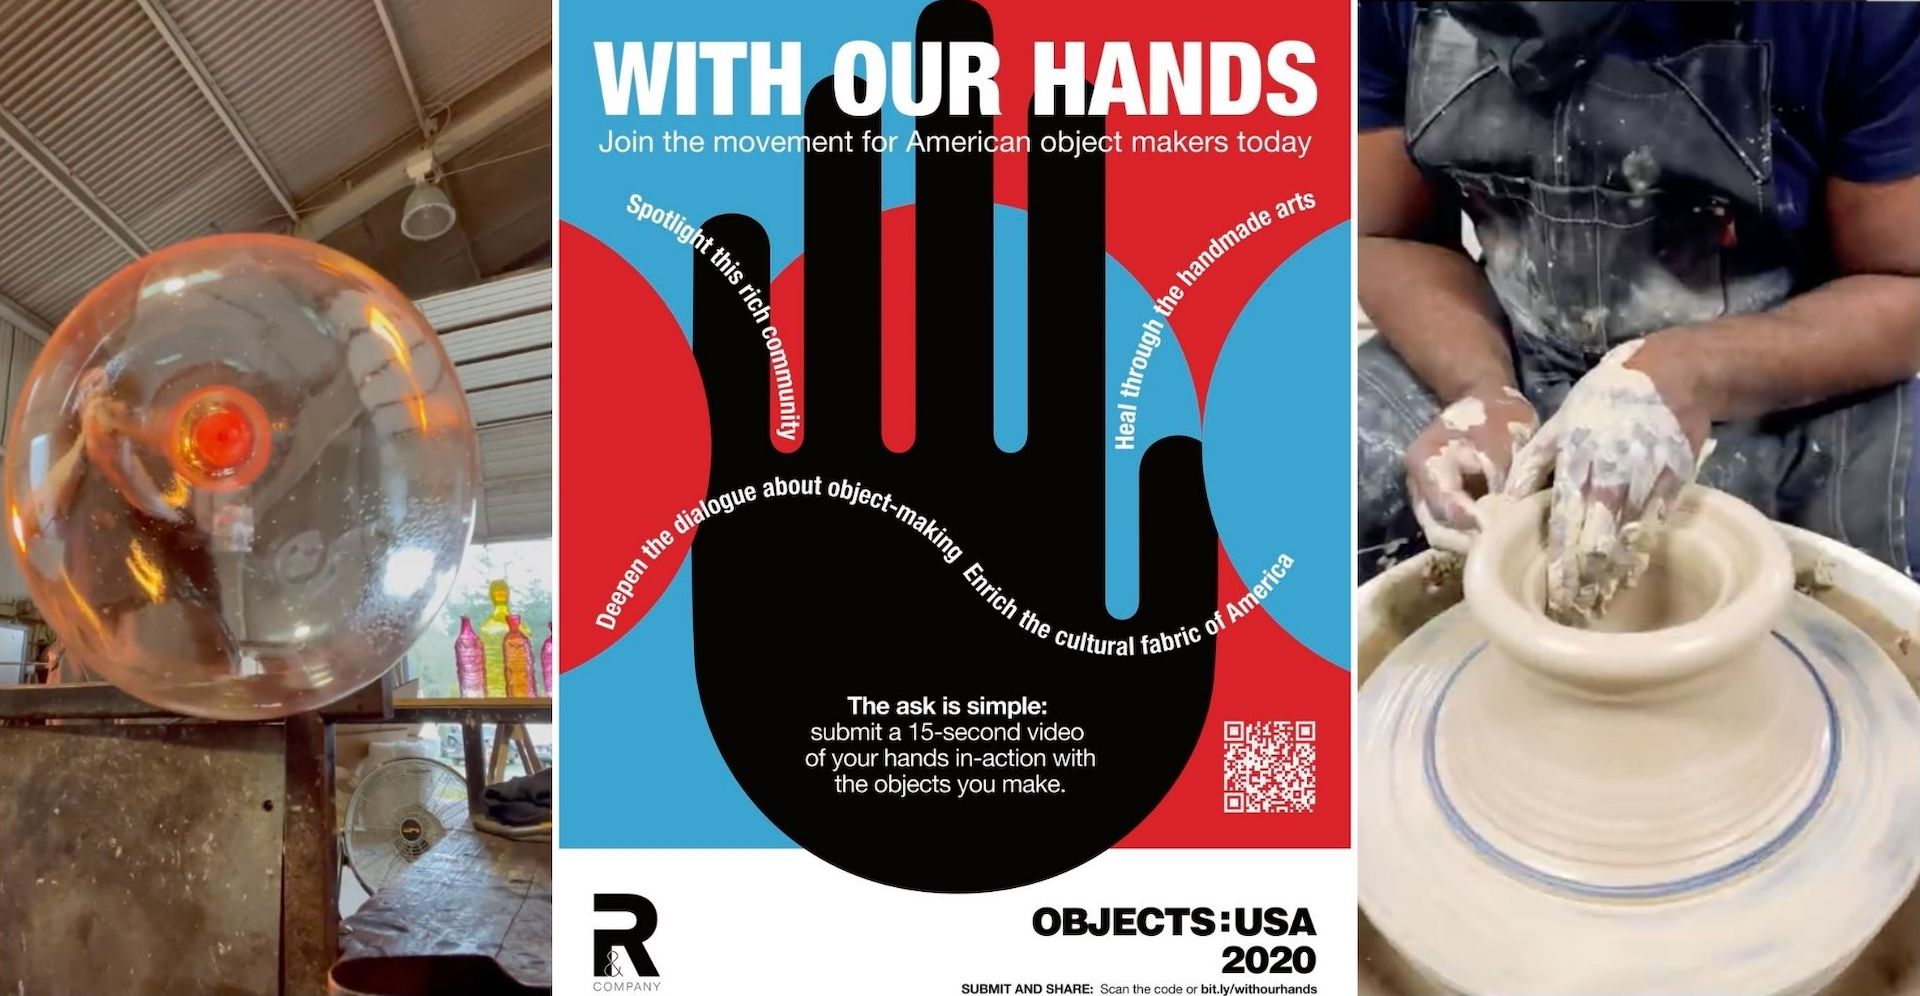 Submit your video to #WithOurHands! Left: video by Andi Kovel. Right: video by Ebitenyefa Baralaye. Courtesy of R & Company